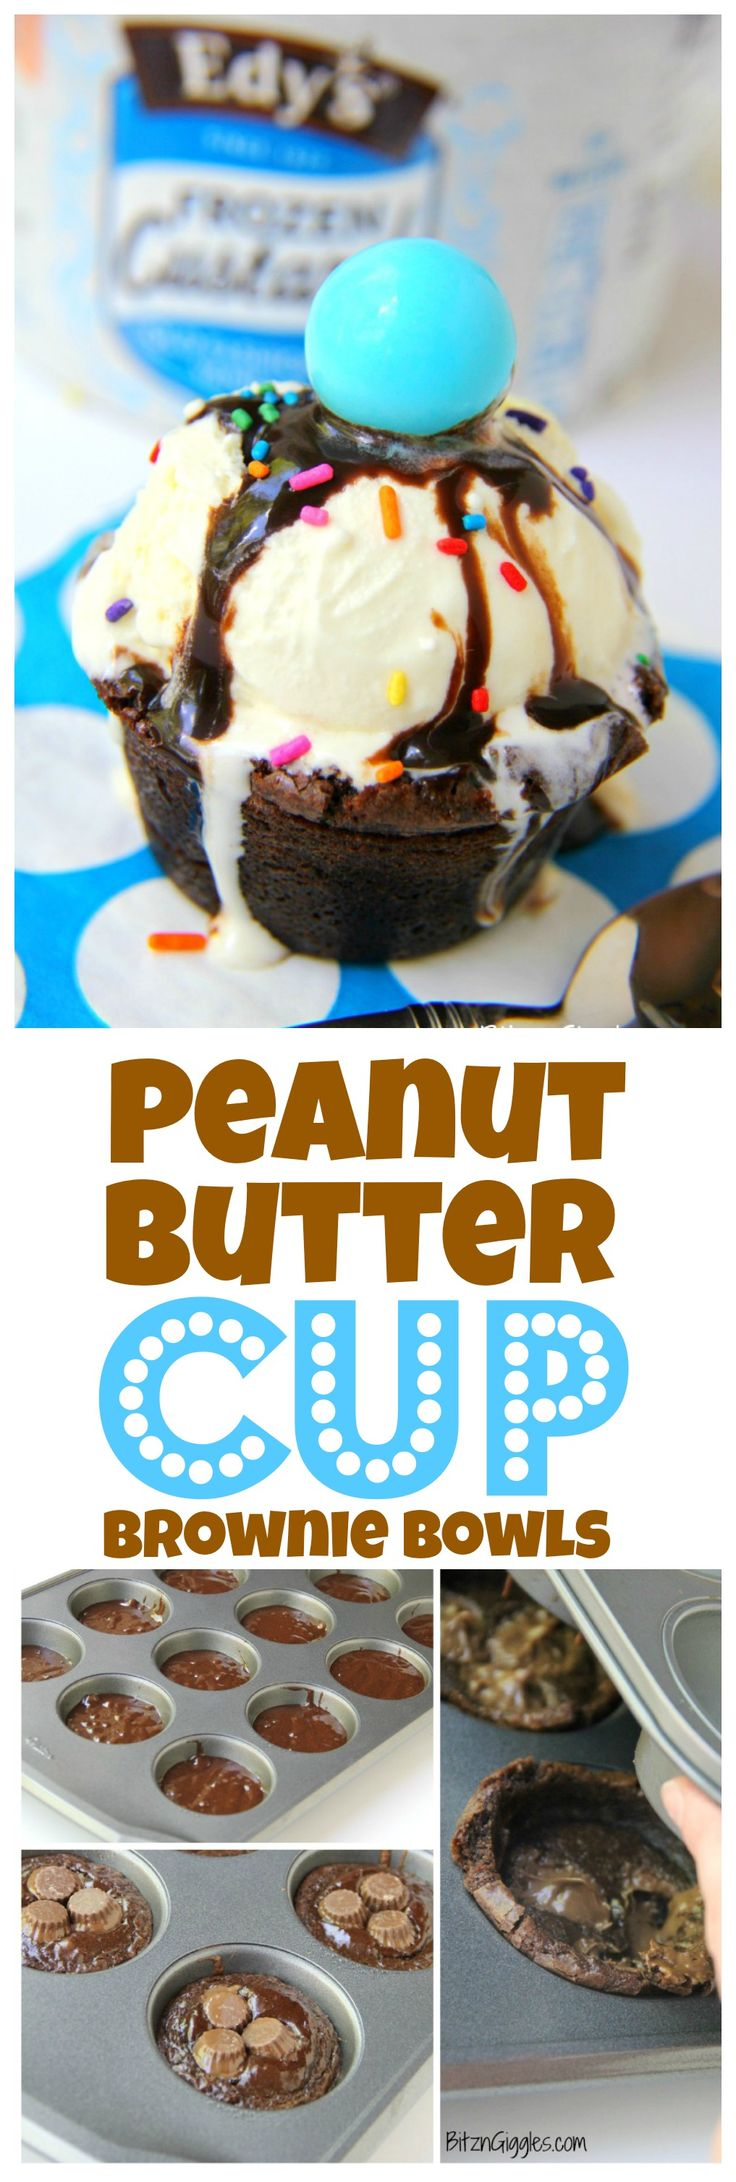 Peanut Butter Cup Brownie Bowls - A peanut butter cup infused brownie bowl perfect to build your ice cream sundae in! #FlavorYourSummer #ad